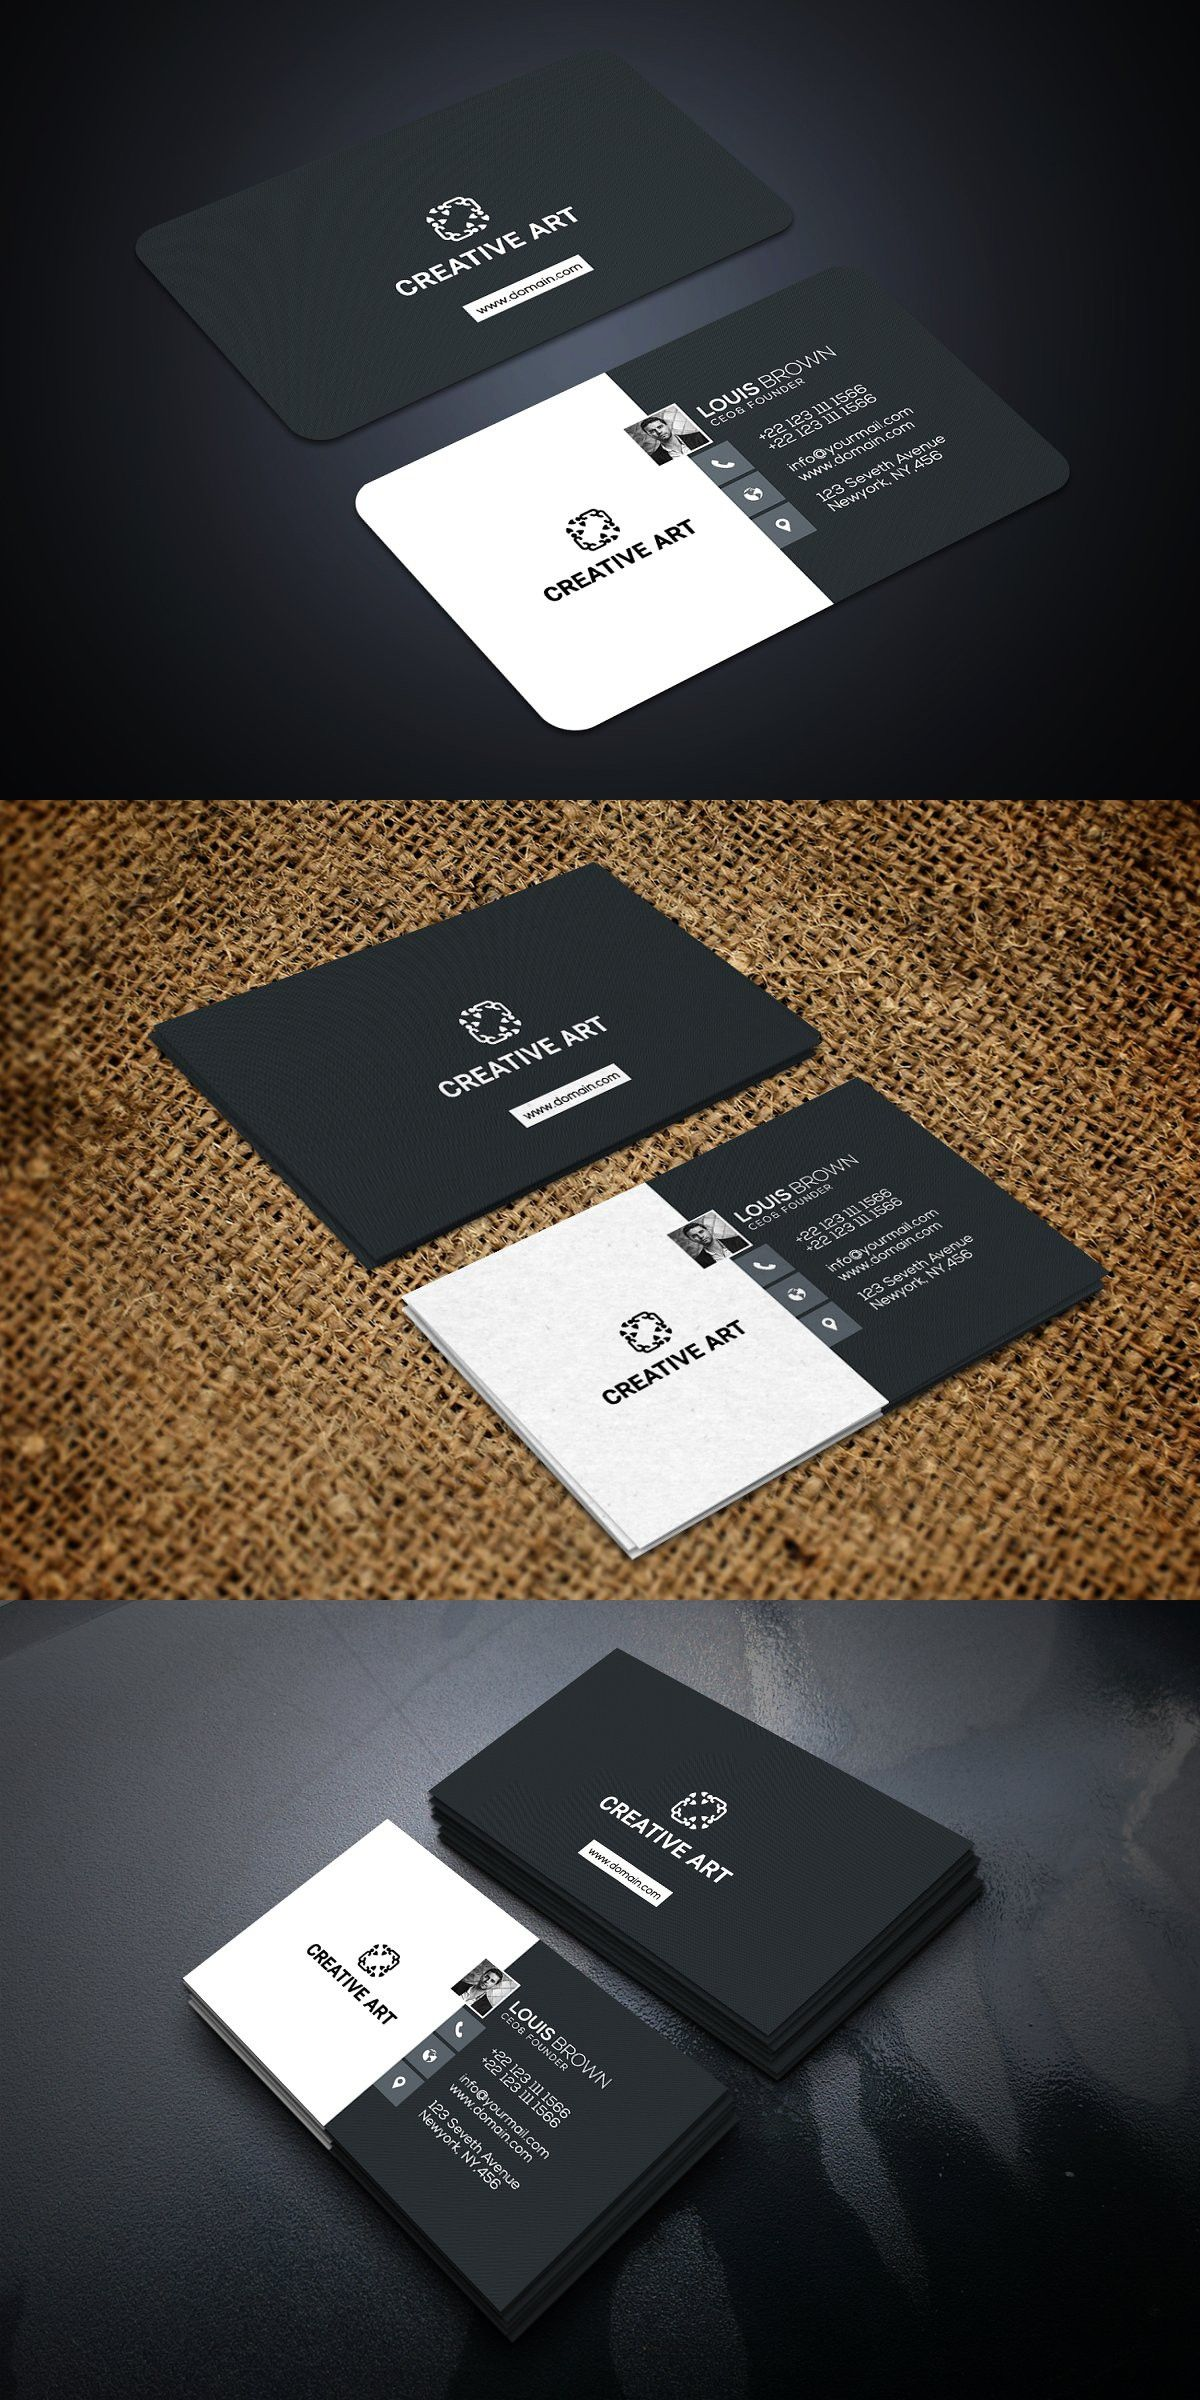 Creative Agency Business Card Agency Business Cards Creative Agency Business Card Creative Agency